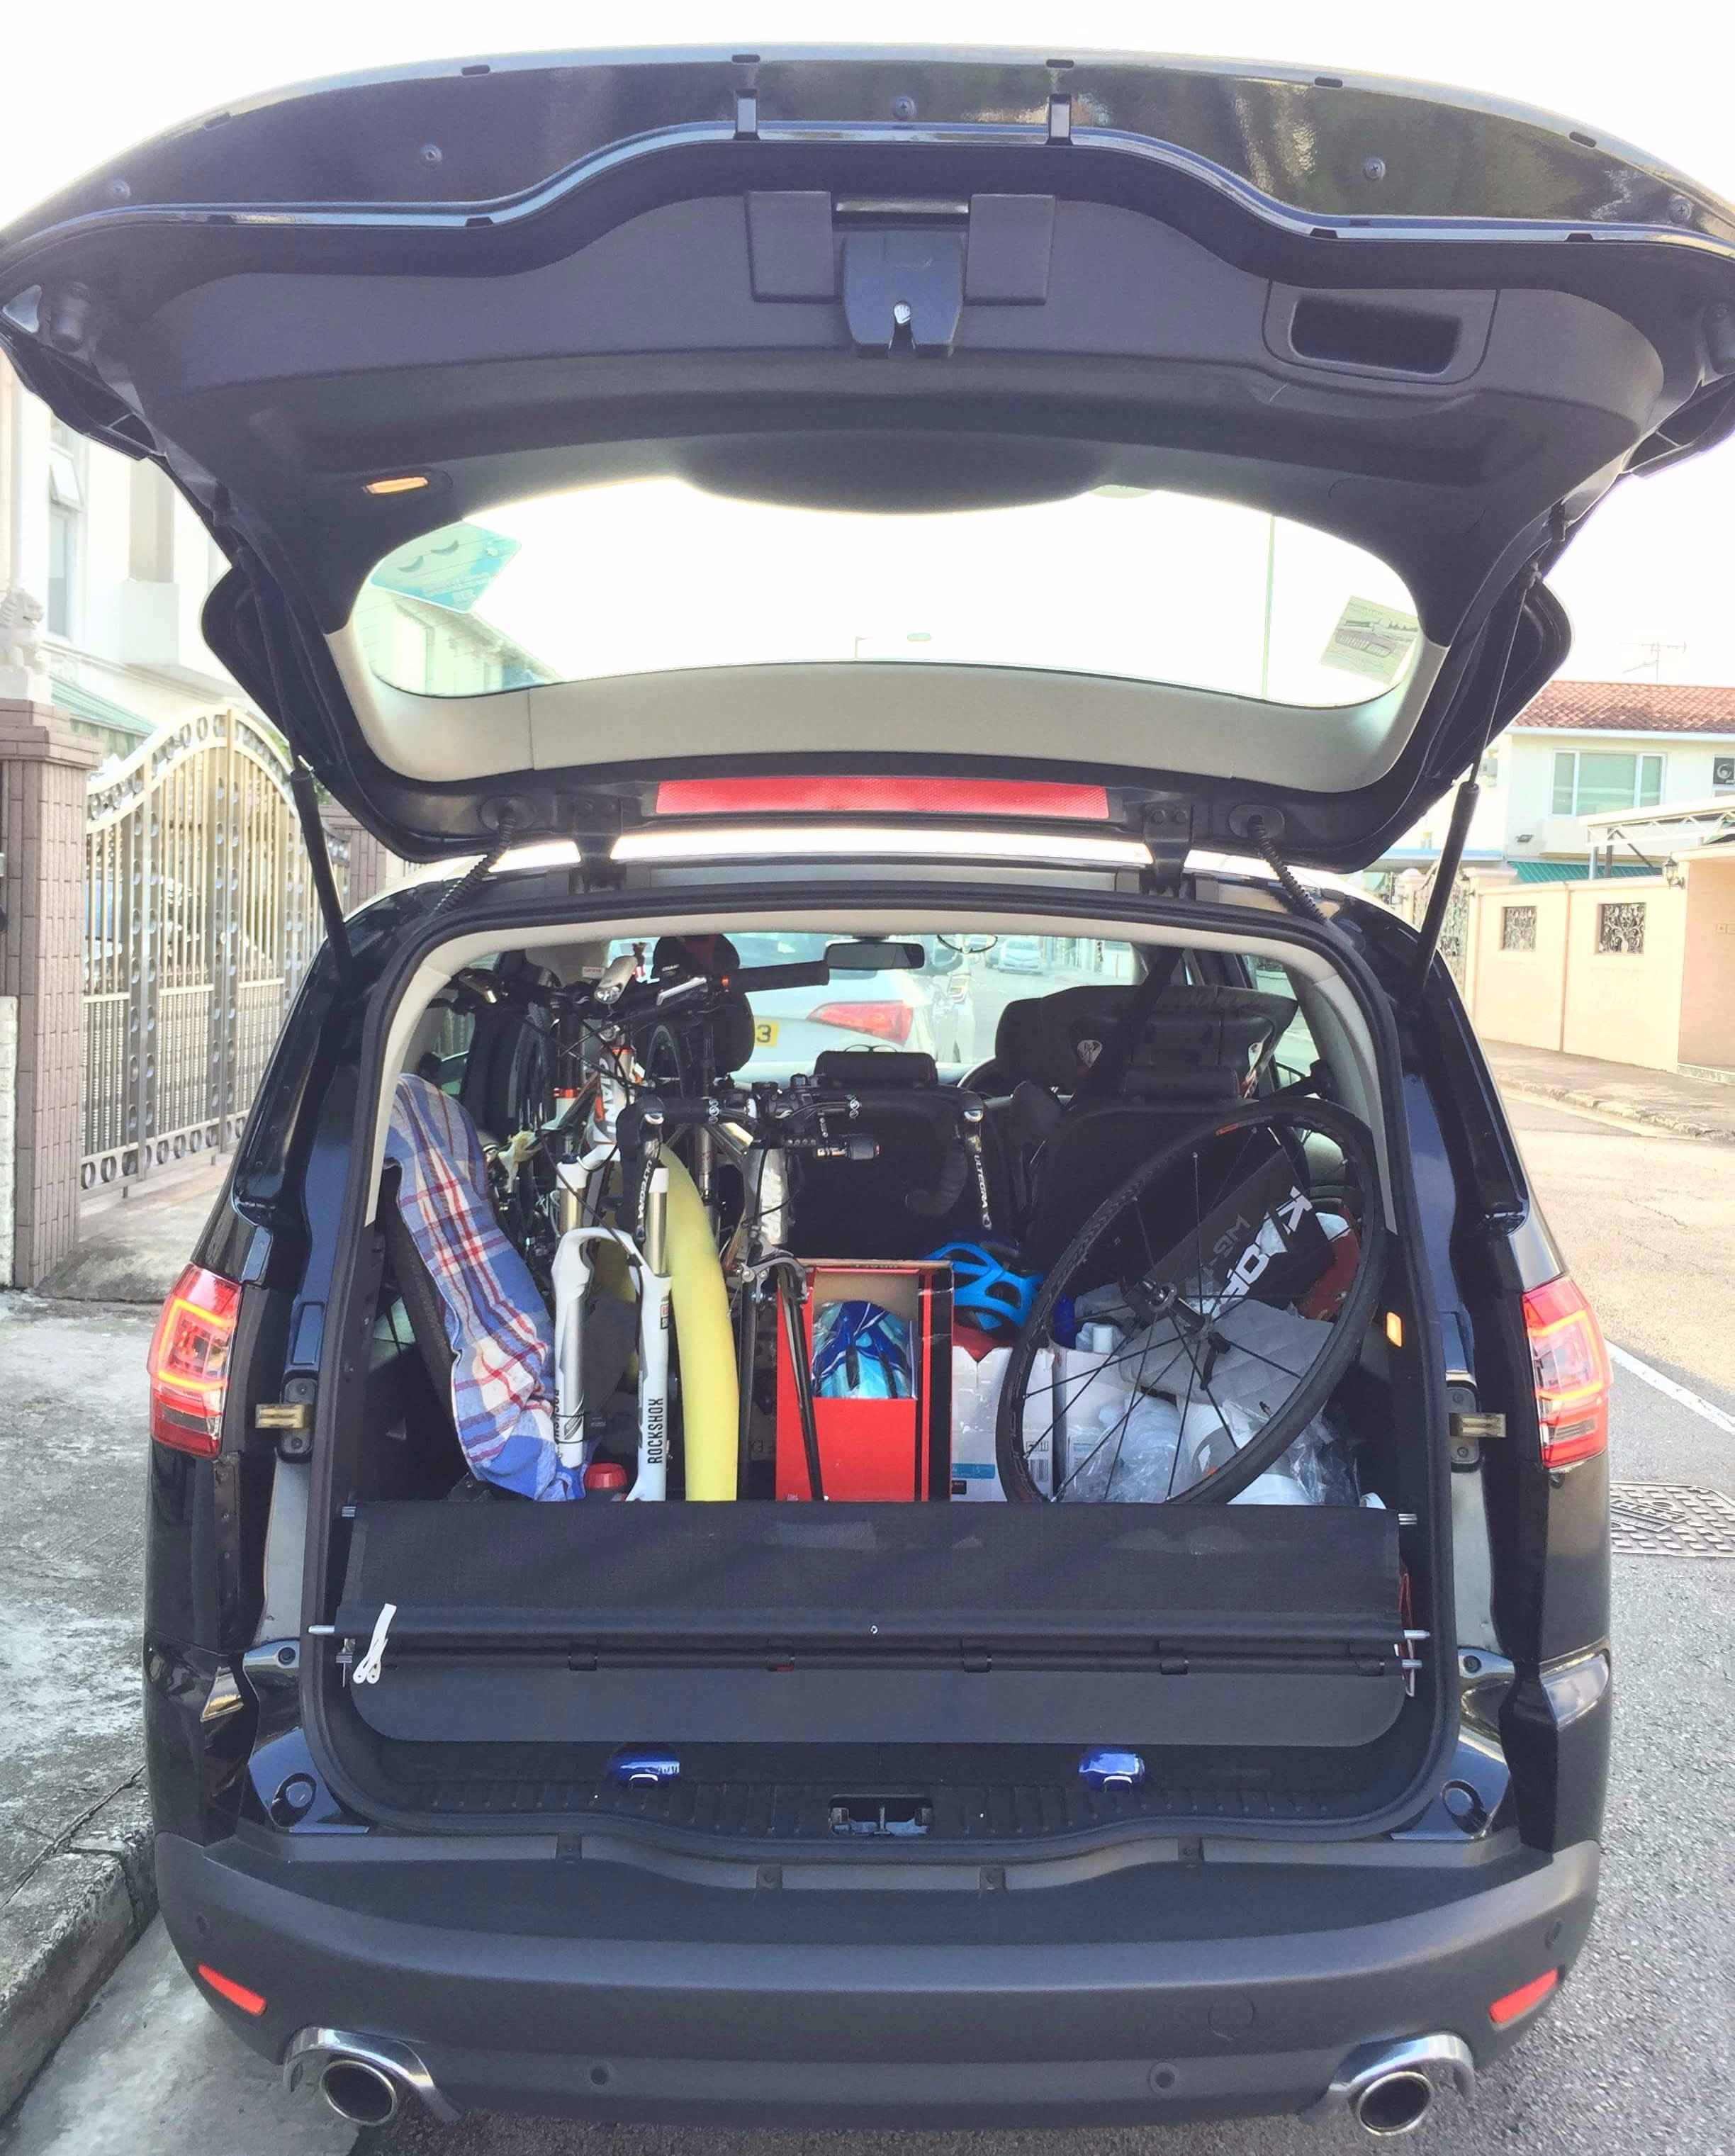 One Road Bike & One MTB in my 7-seat people carrier